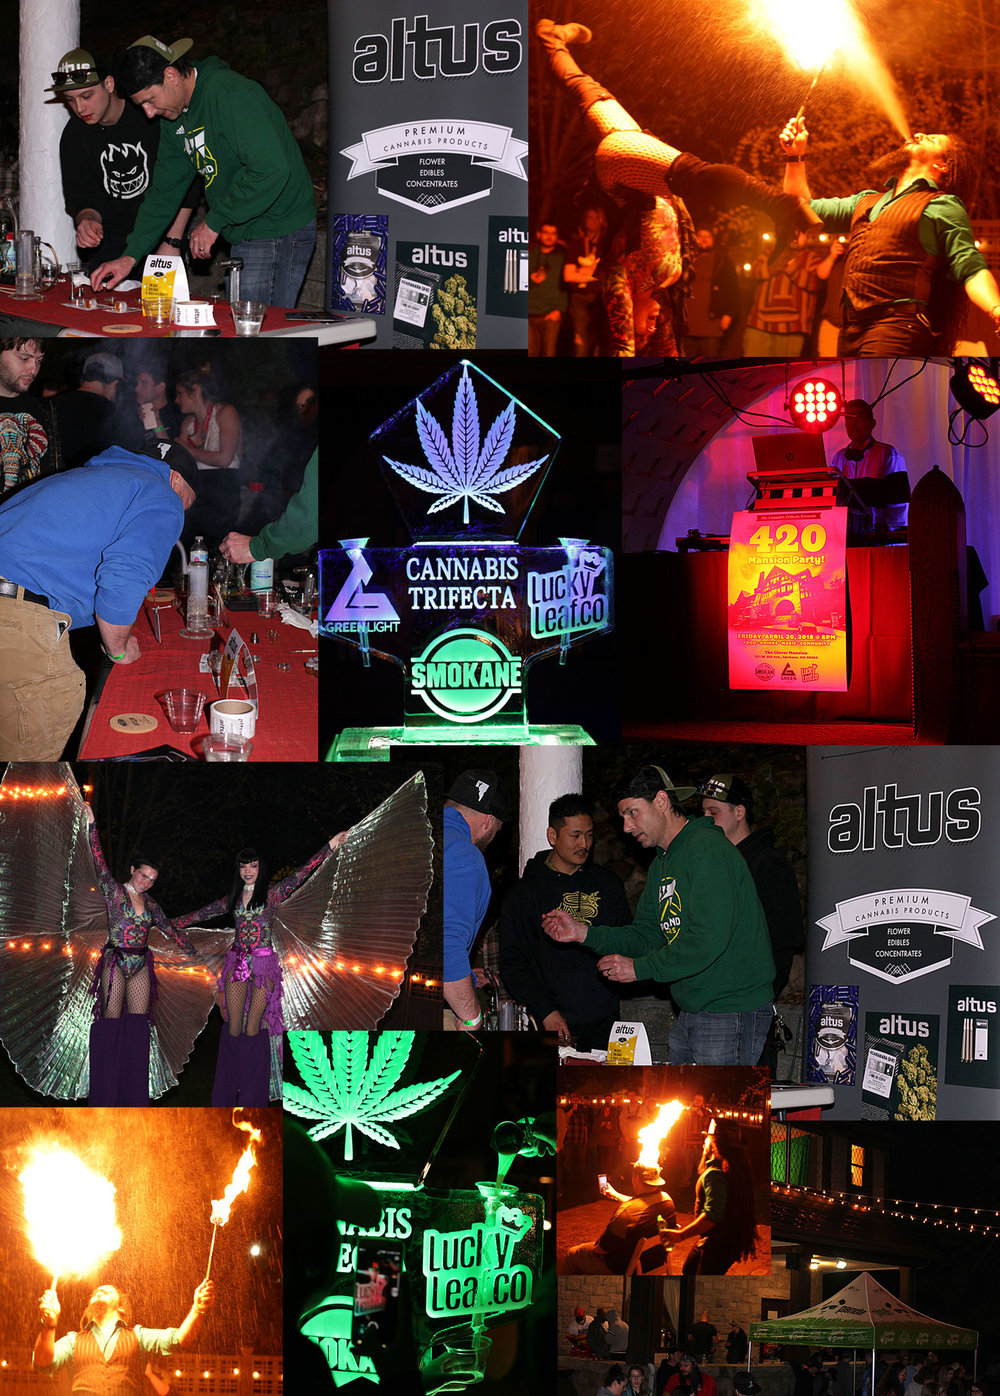 Altus Dabs hosting a dab bar at The 420 Mansion Party for the Spokane Cannabis Industry hosted by Smokane, Green Light, and Lucky Leaf Co.